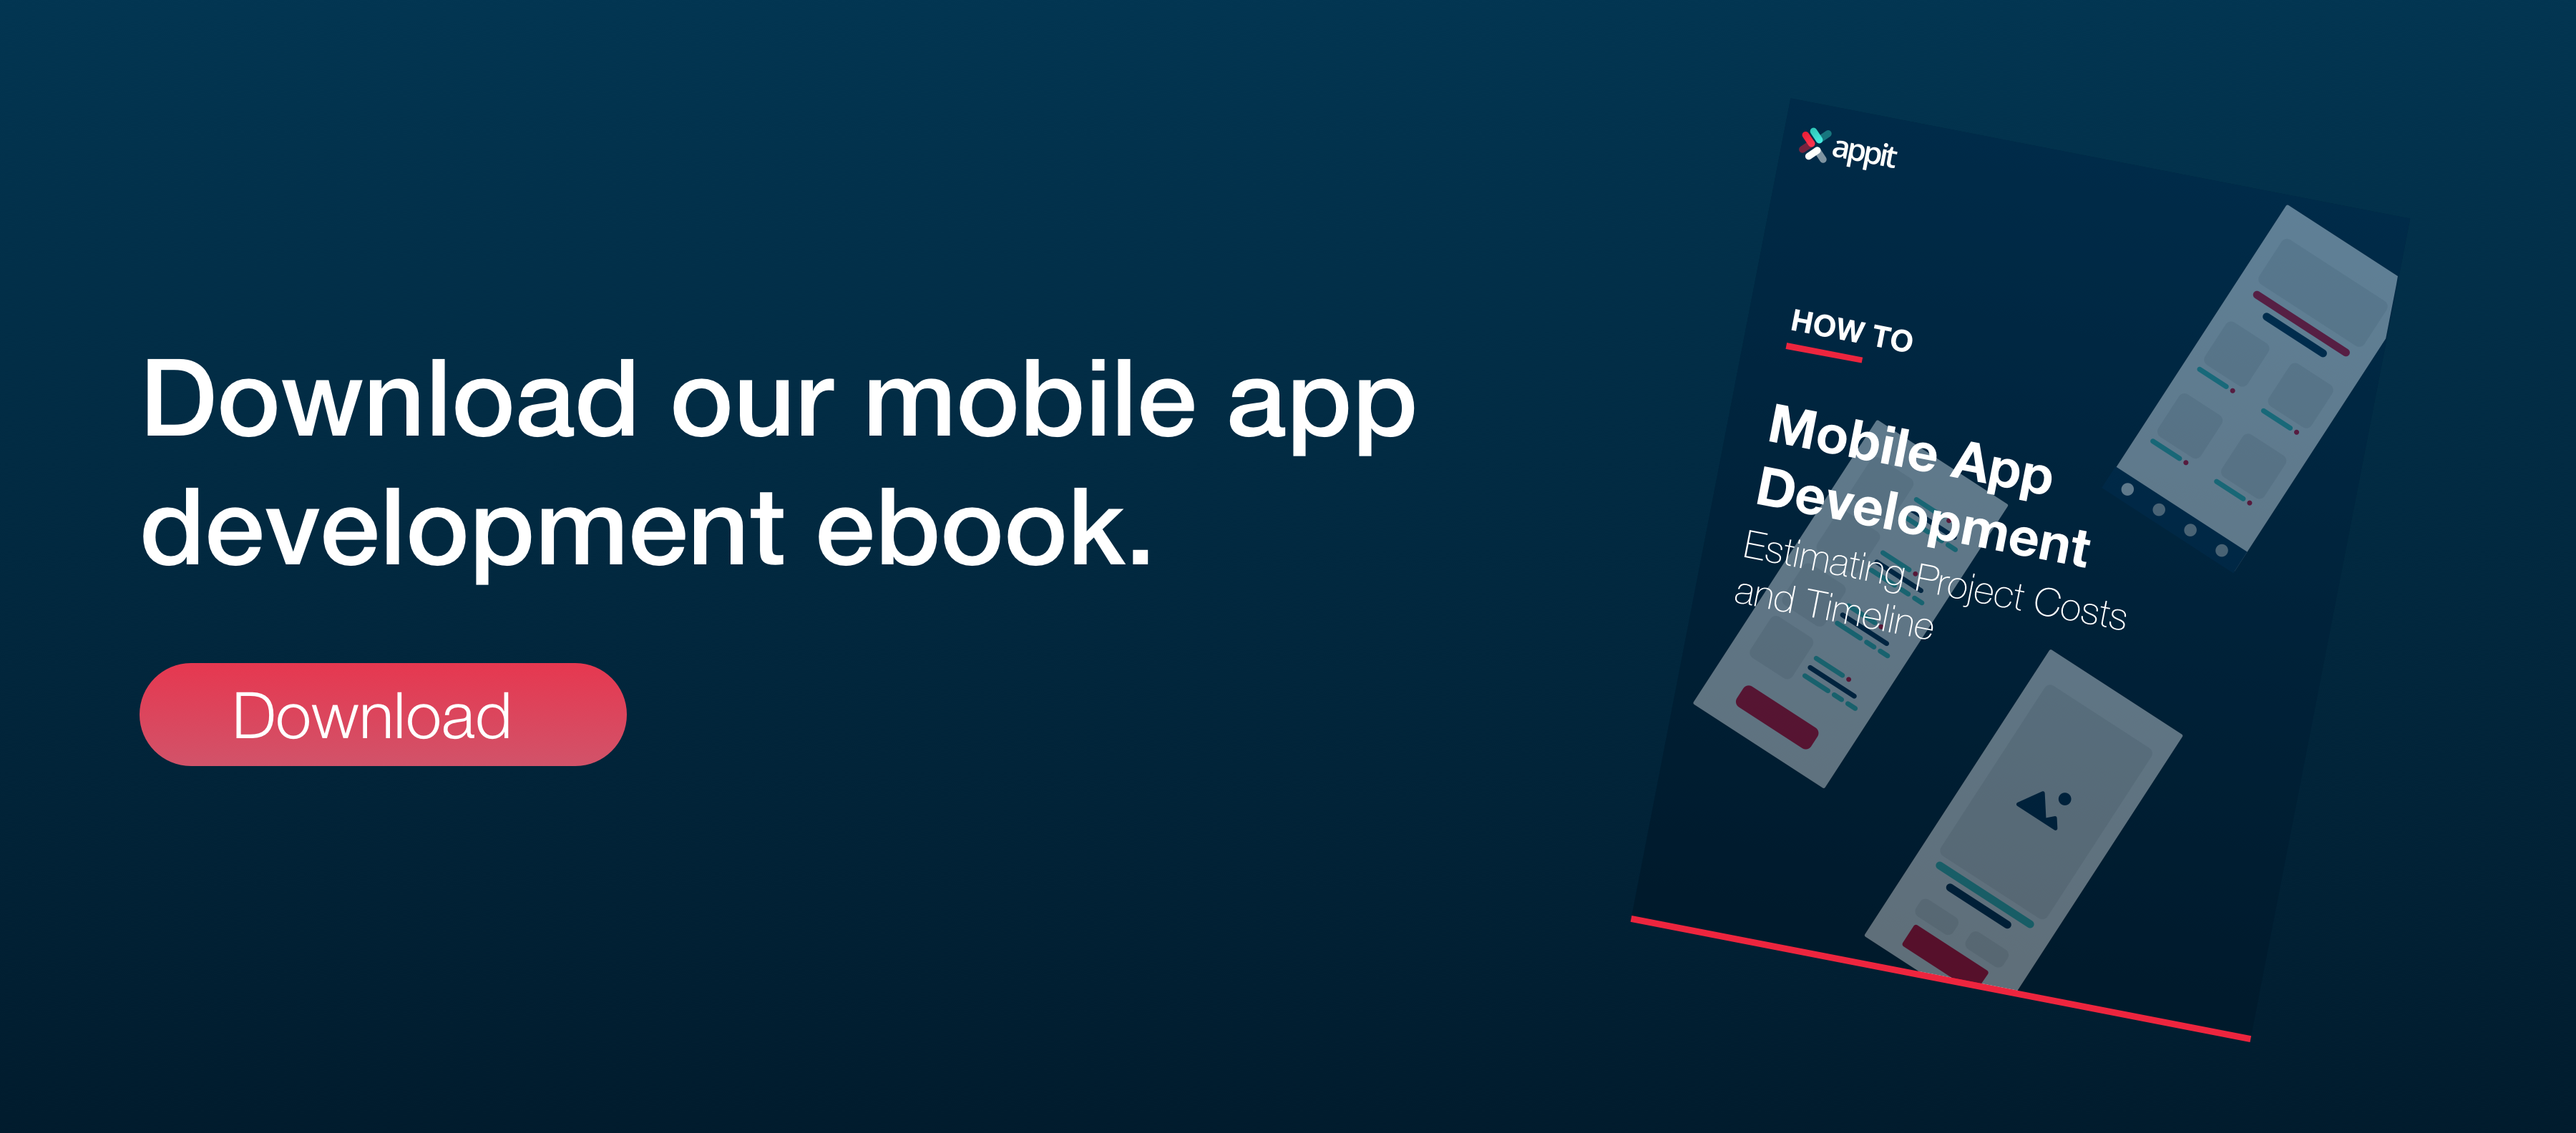 mobile-app-development-ebook